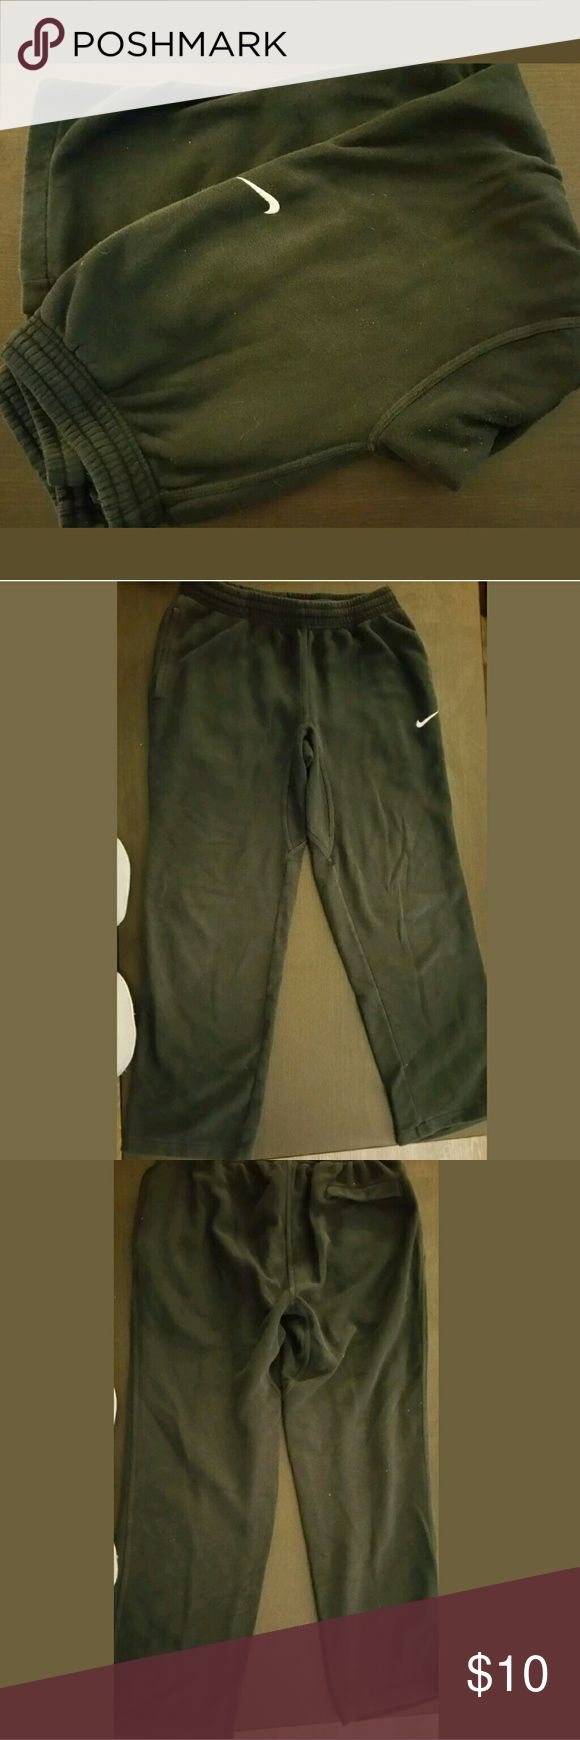 Nike Club Swoosh Fleece Sweatpants Medium Black Nike Club Swoosh Men's Fleece Sweatpants Pants Classic Fit, Medium - Black  Fleece pant with side pockets. Drawcord at waistband for adjustability and open bottom hem. Embroidered Swoosh  No stains or tears.   Have a great day!  Tracy Nike Pants Sweatpants & Joggers